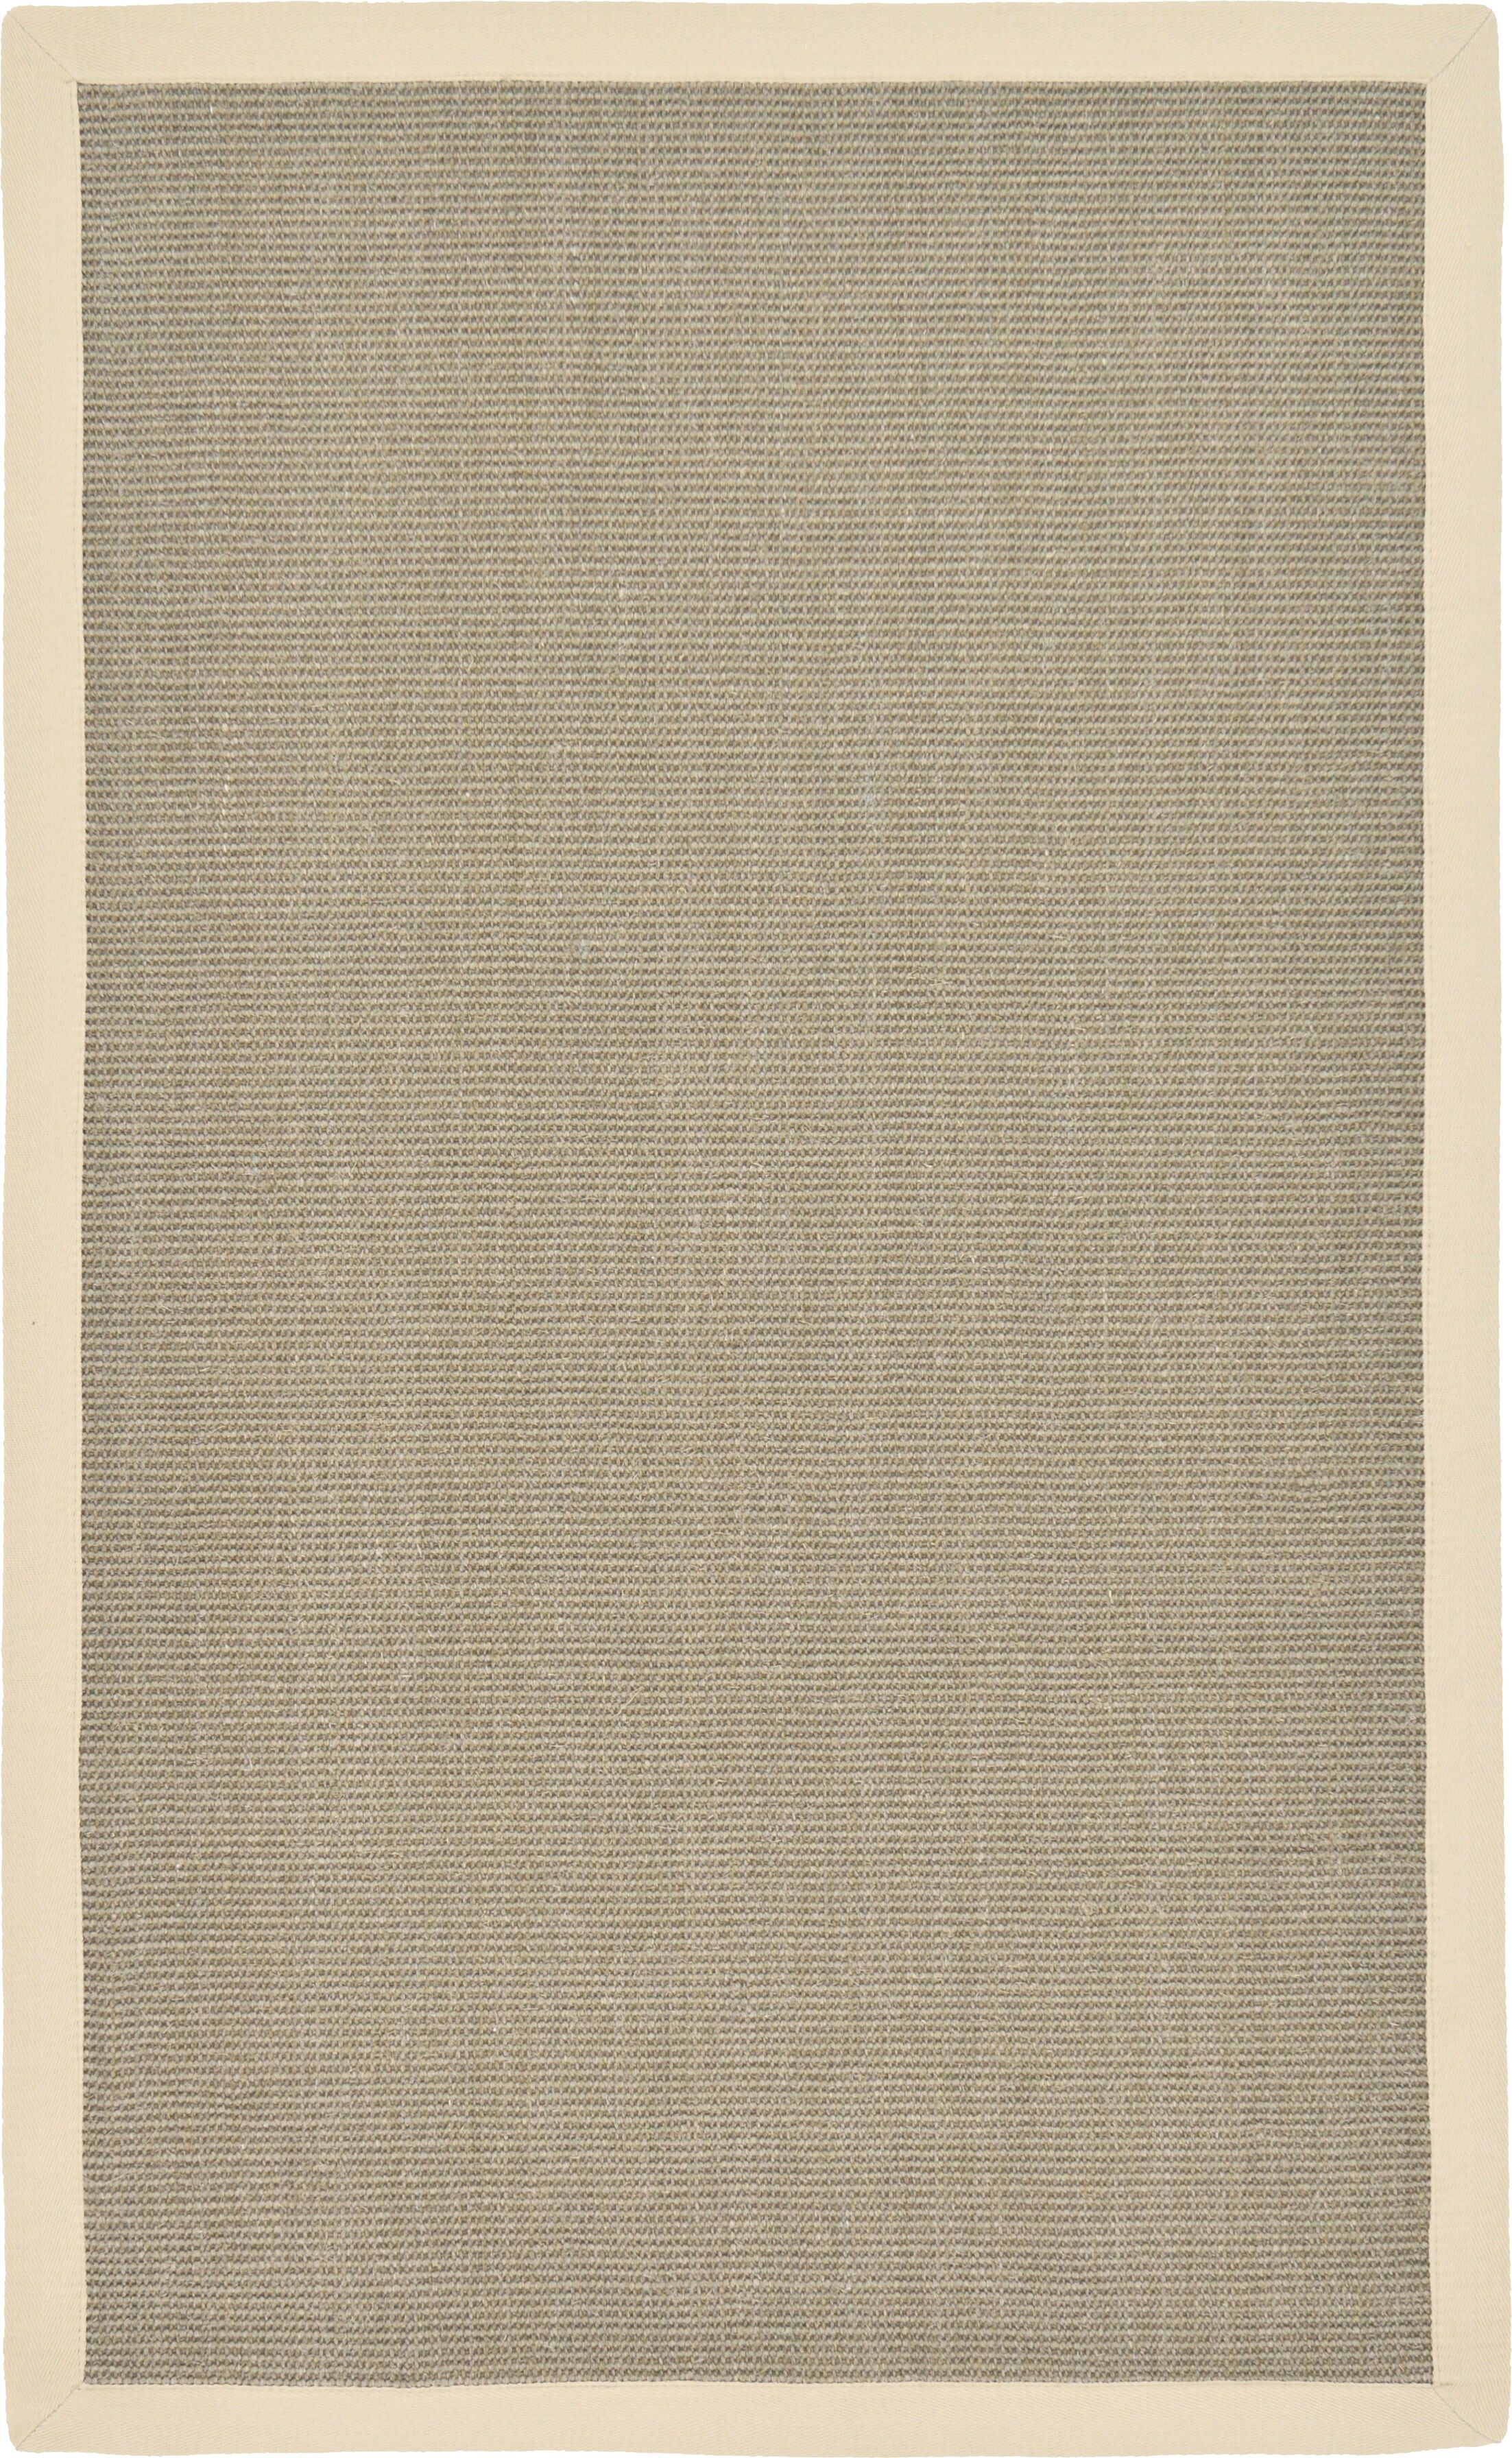 Westminster Taupe Outdoor Area Rug Rug Size: Rectangle 3' x 5'